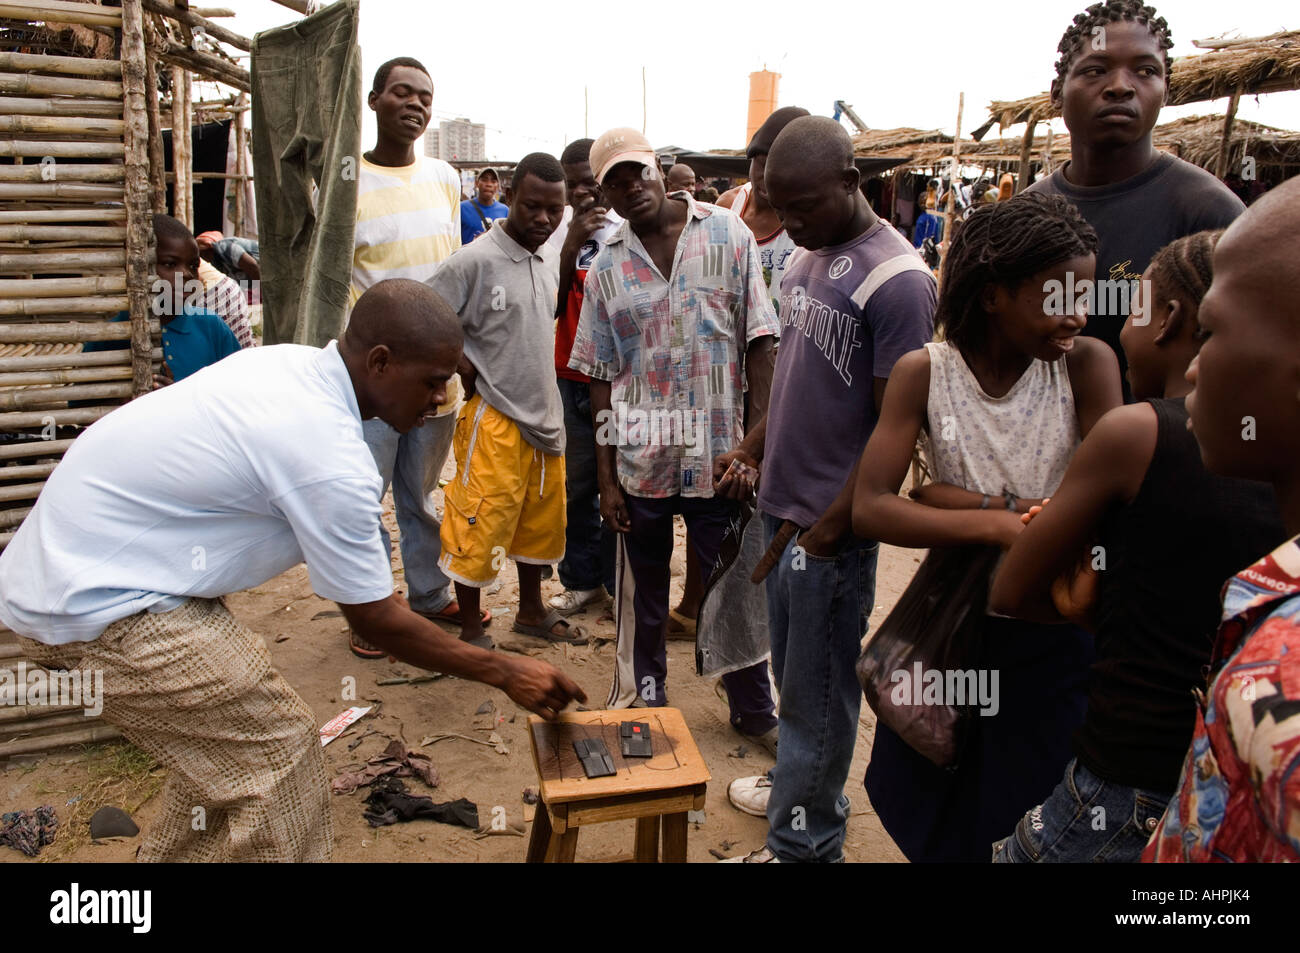 Gambling games are common entertainement in the market, Tchungamoyo market, Beira, Mozambique - Stock Image